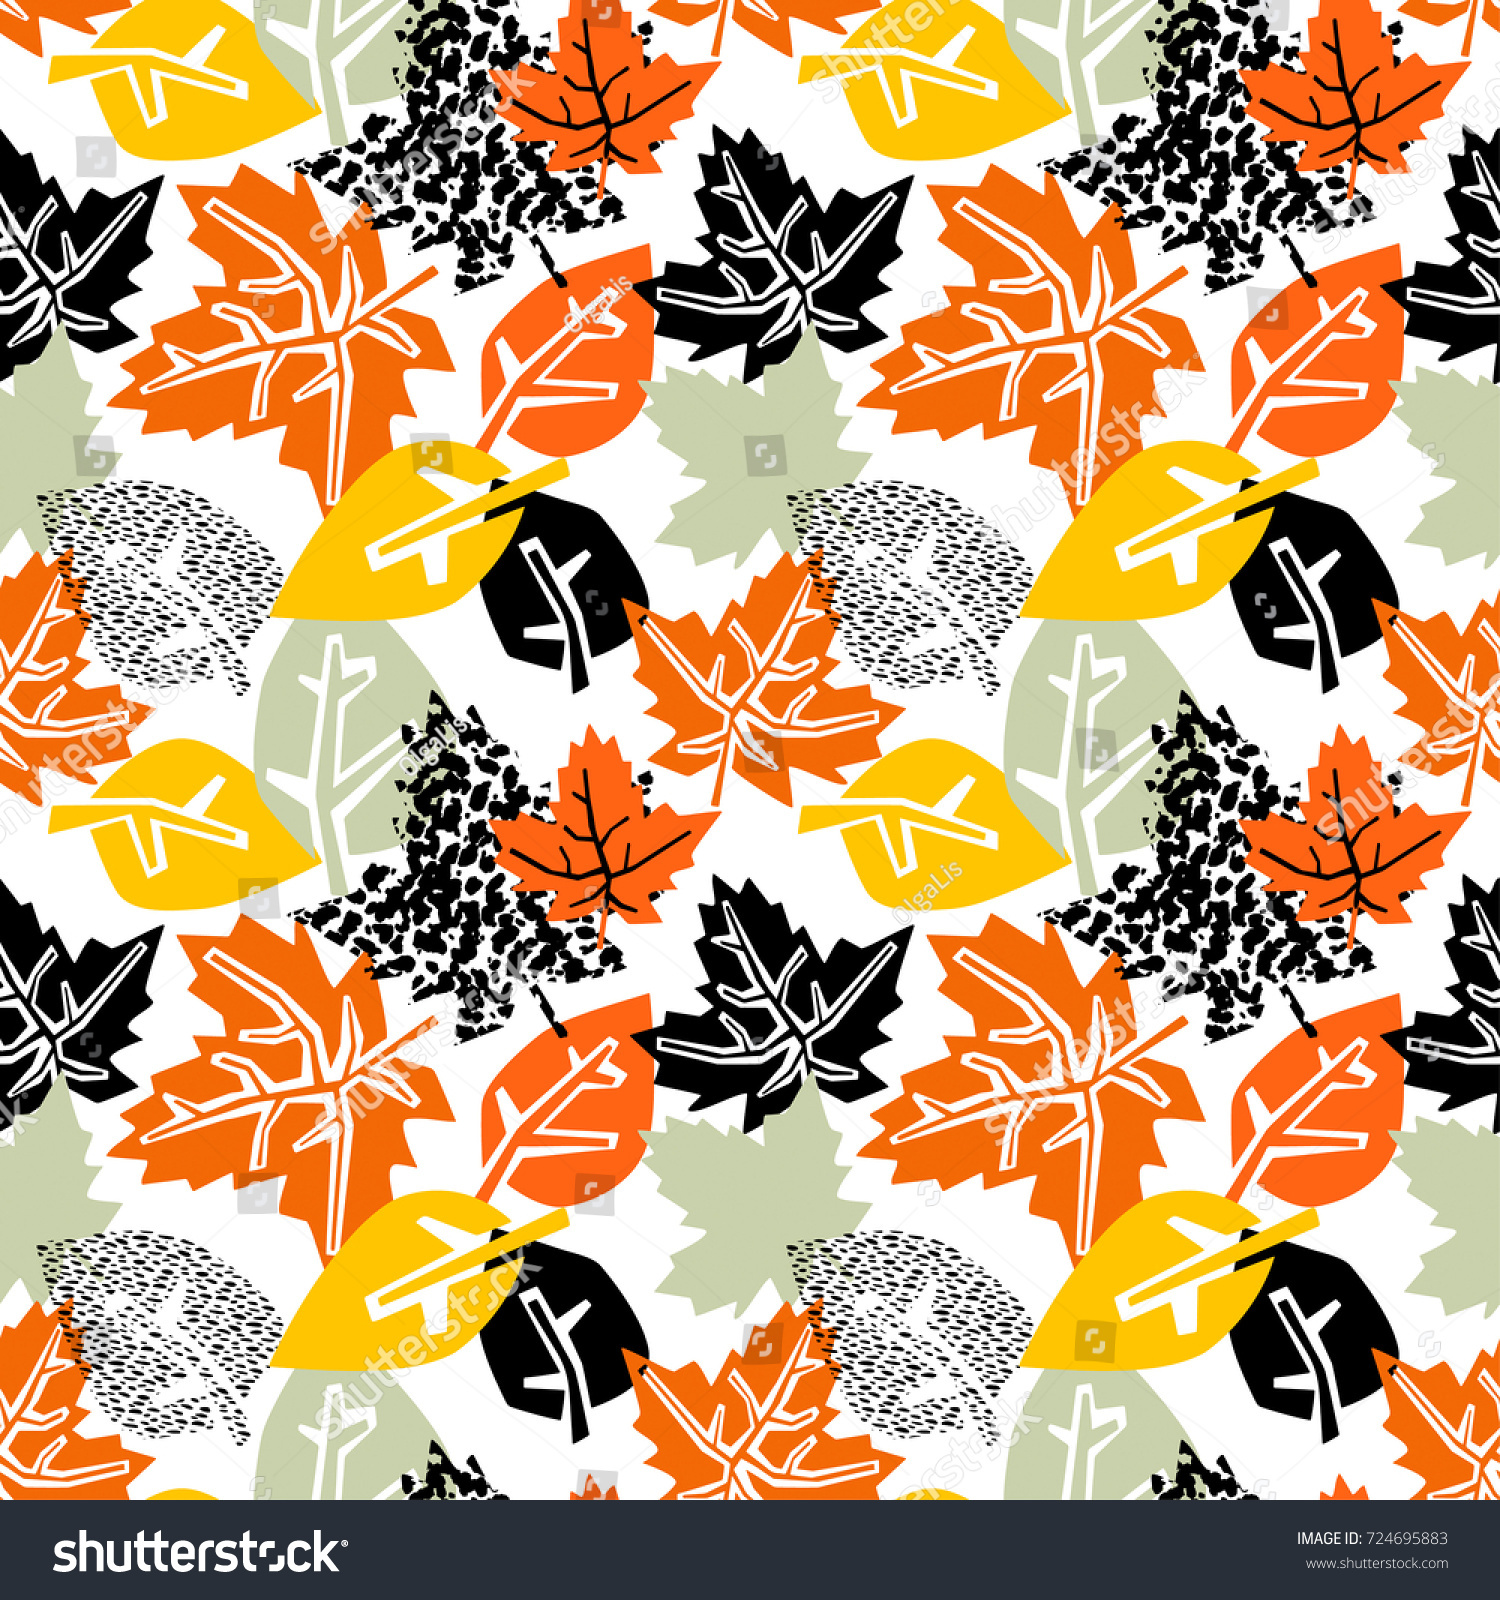 Seamless Autumn Leaves Patterntrendy Print Collage Stock